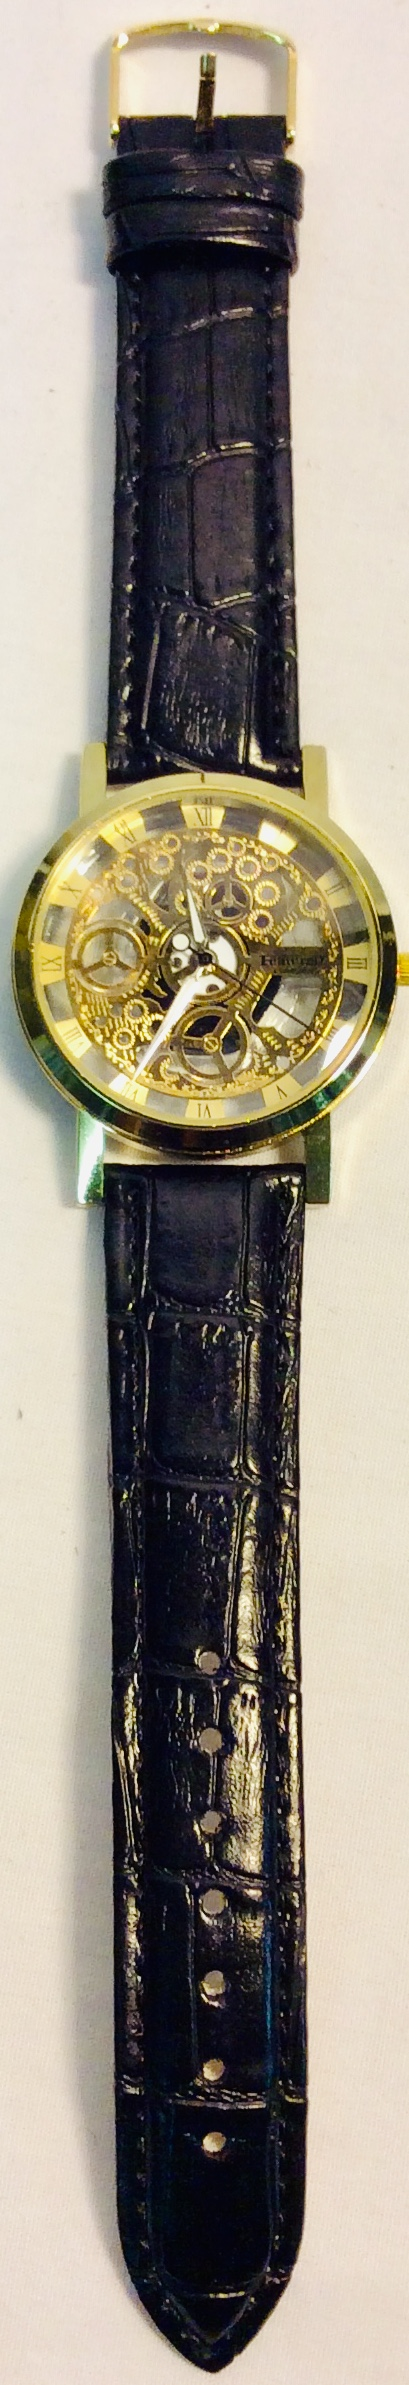 Featurely Golden face with engine details with black leather strap